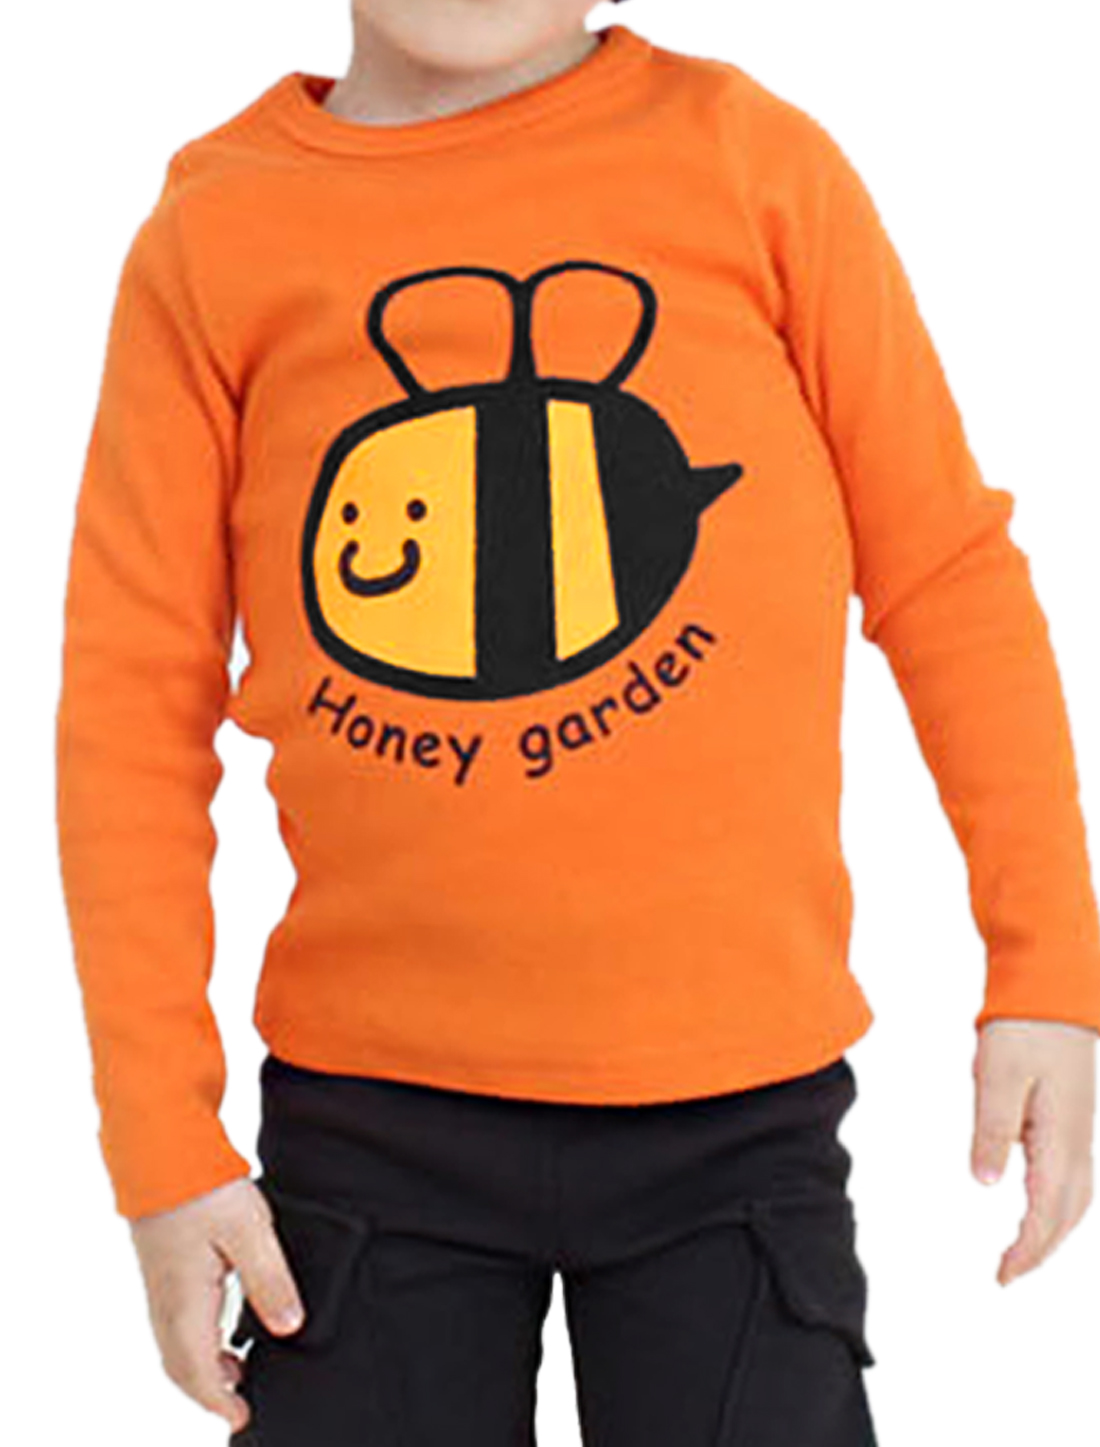 Boys Lovely Orange Bee Letters Prints Long Sleeve Slim Fit T-Shirt 3T